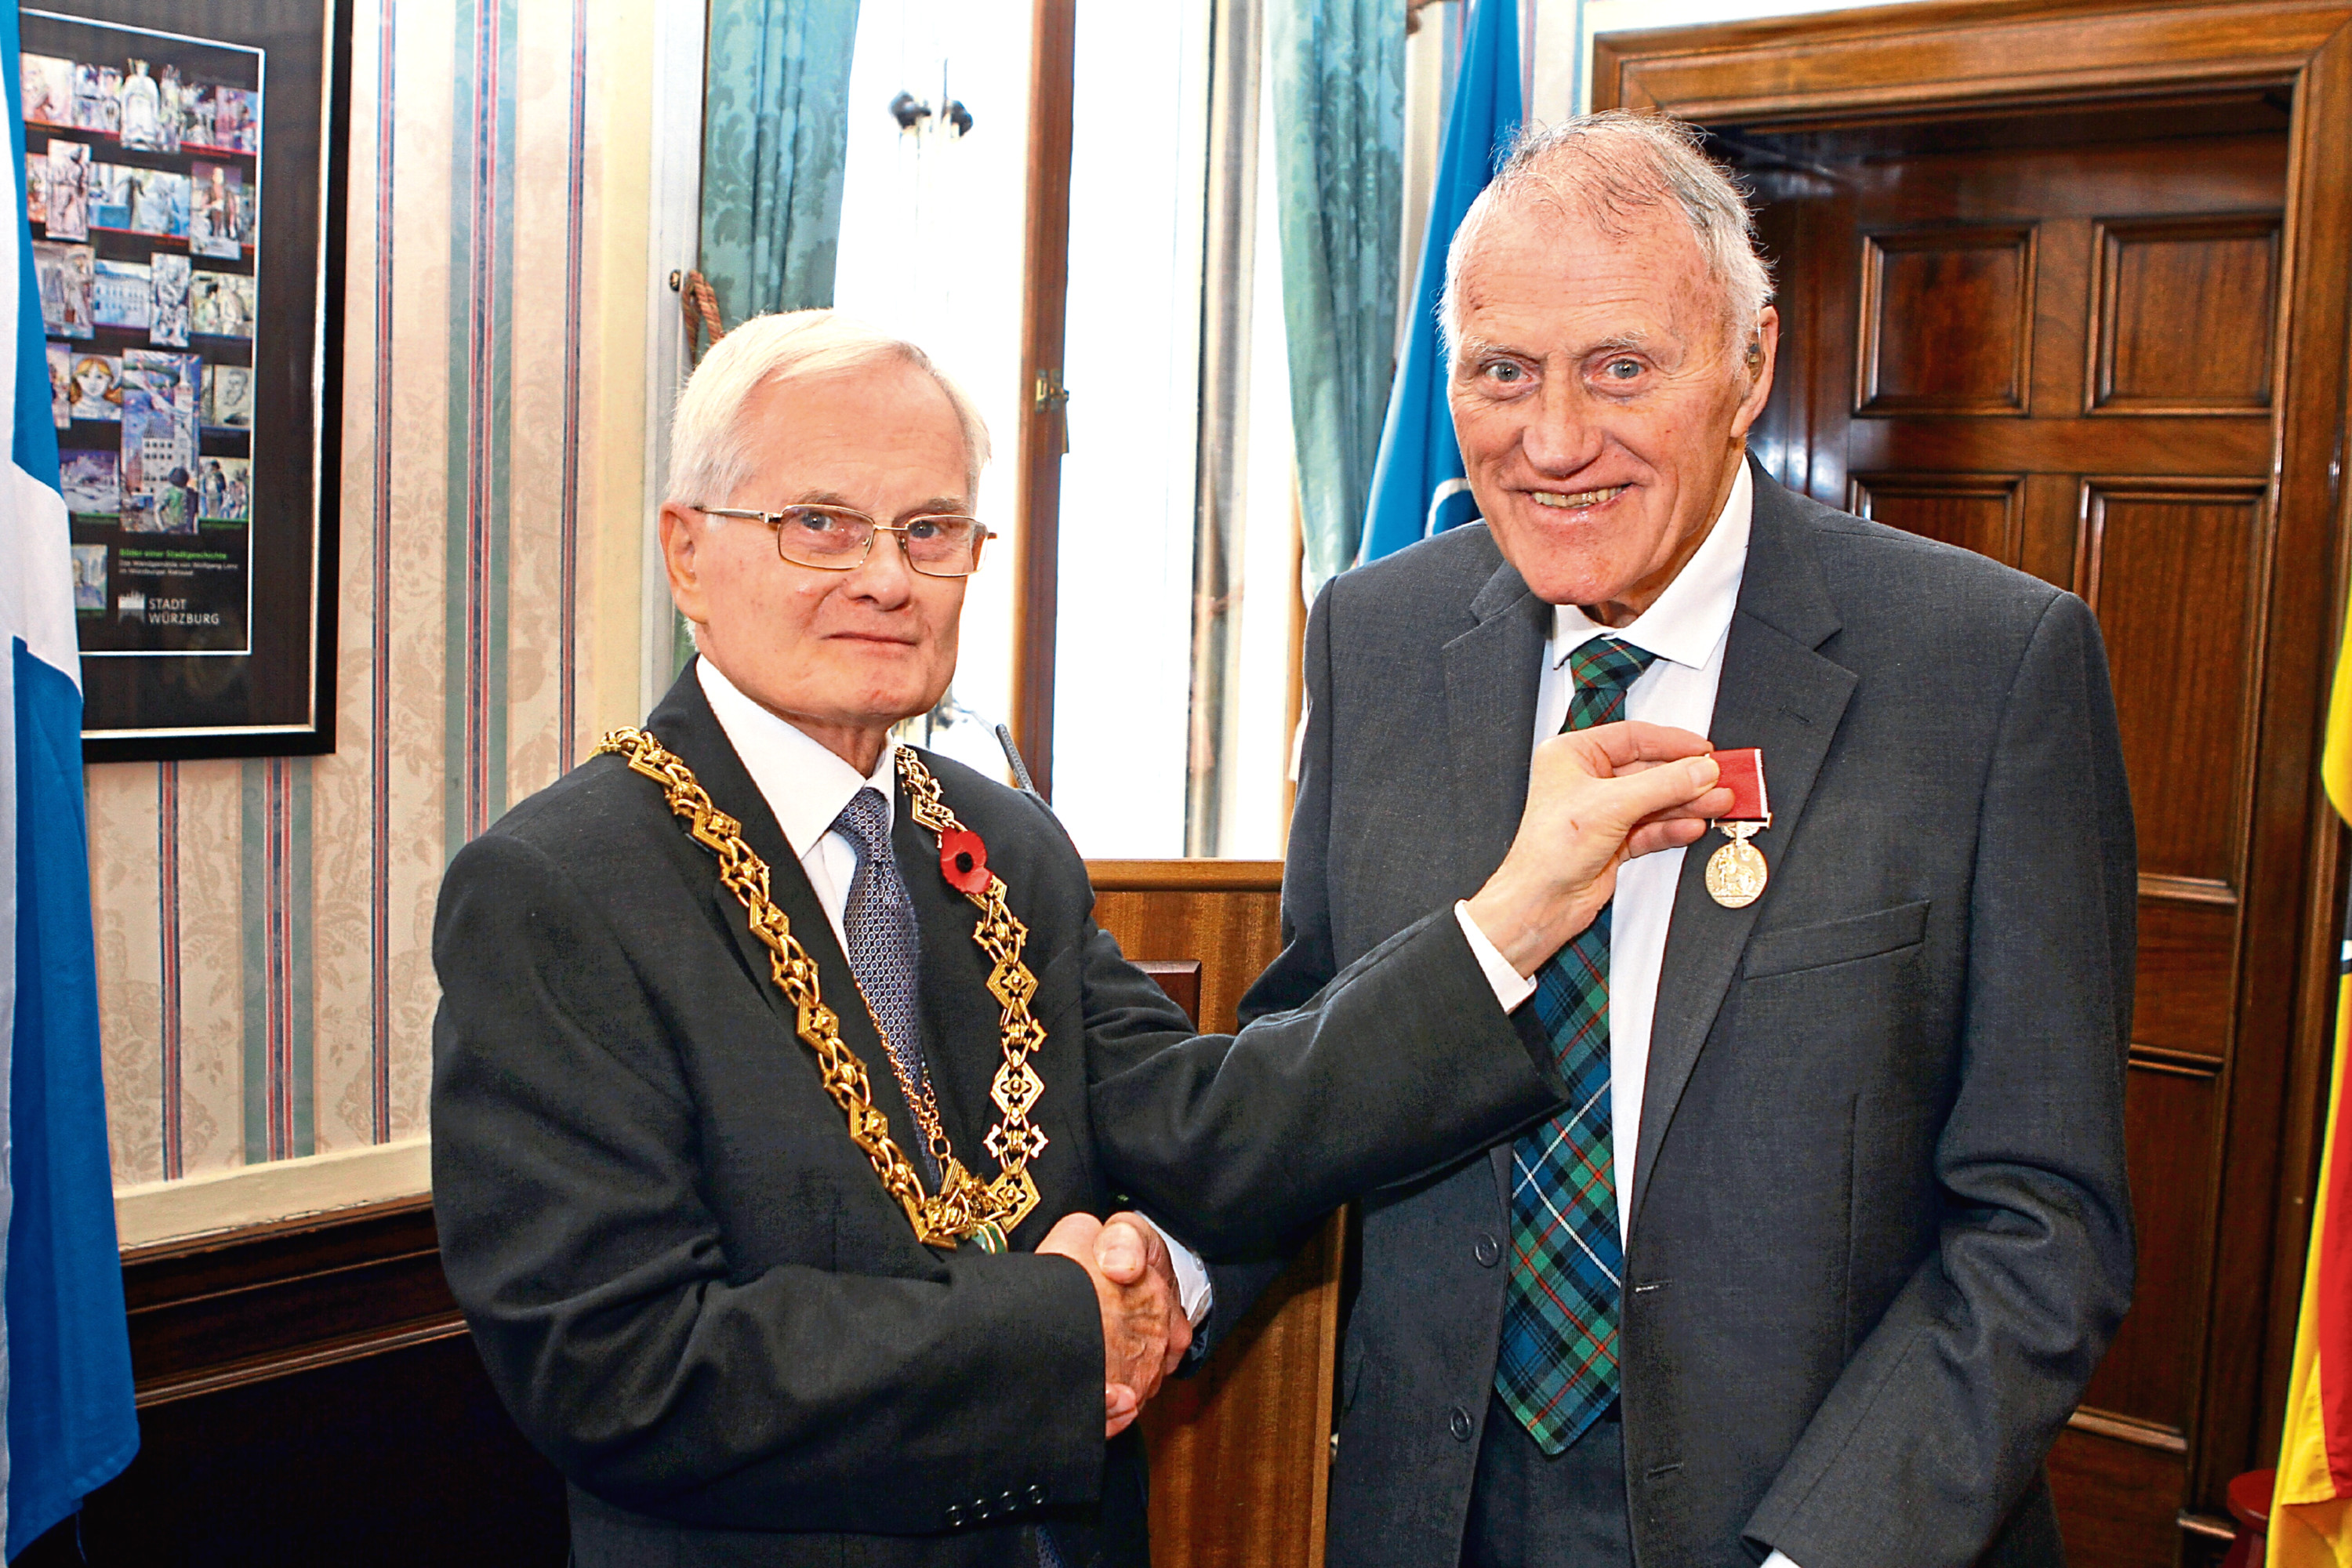 Frank Jordan receives the British Empire Medal from Lord Provost Borthwick at a ceremony for family and friends in the city chambers